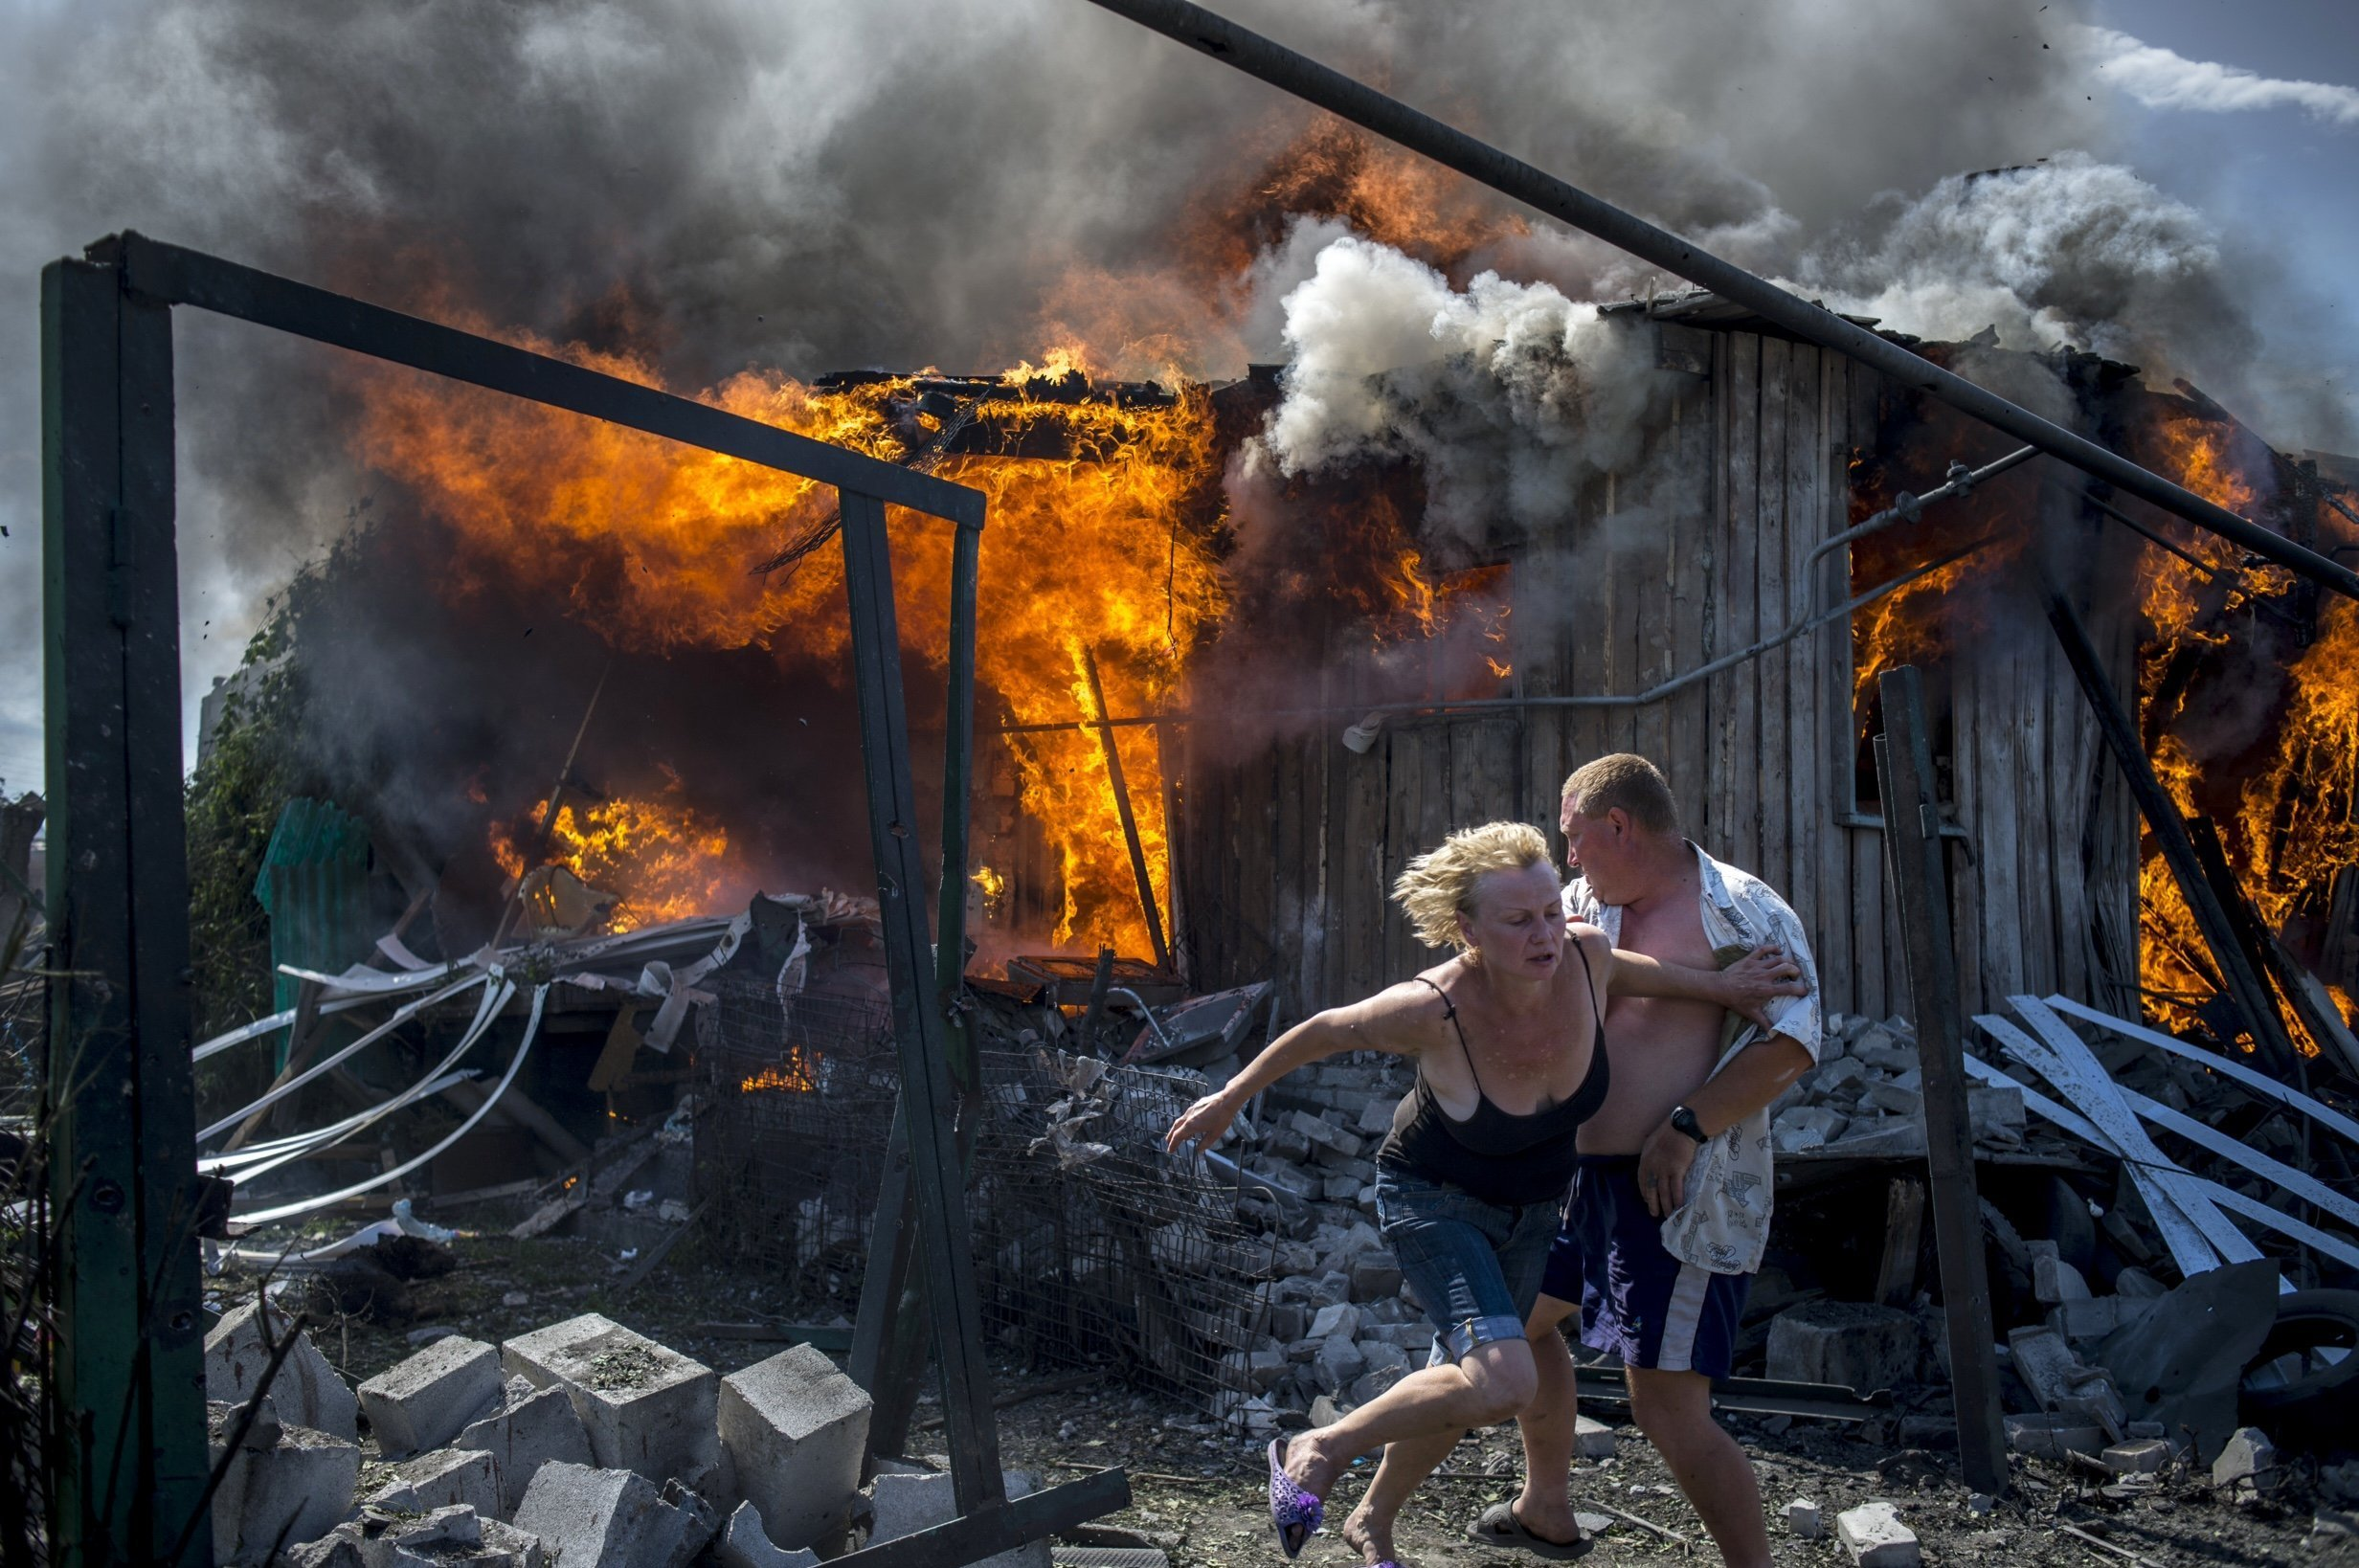 Residents of the village of Lugansk fleeing from an airstrike by the Ukrainian armed forces. Photo by Valery Melnikov